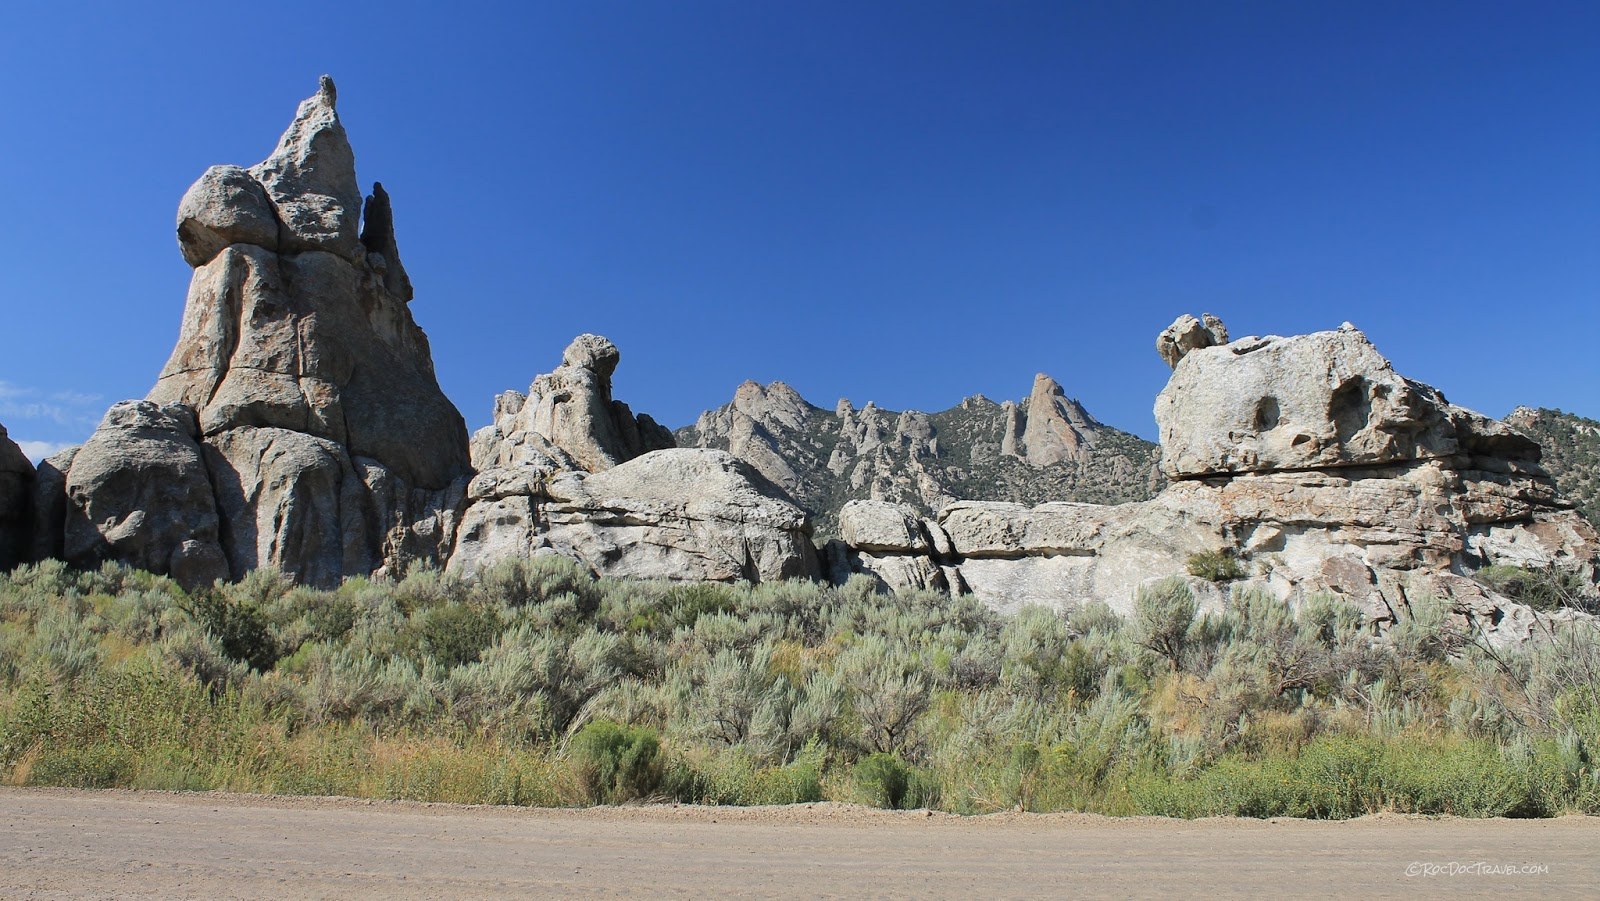 City of Rocks National Reserve Idaho geology travel field trip copyright rocdoctravel.com